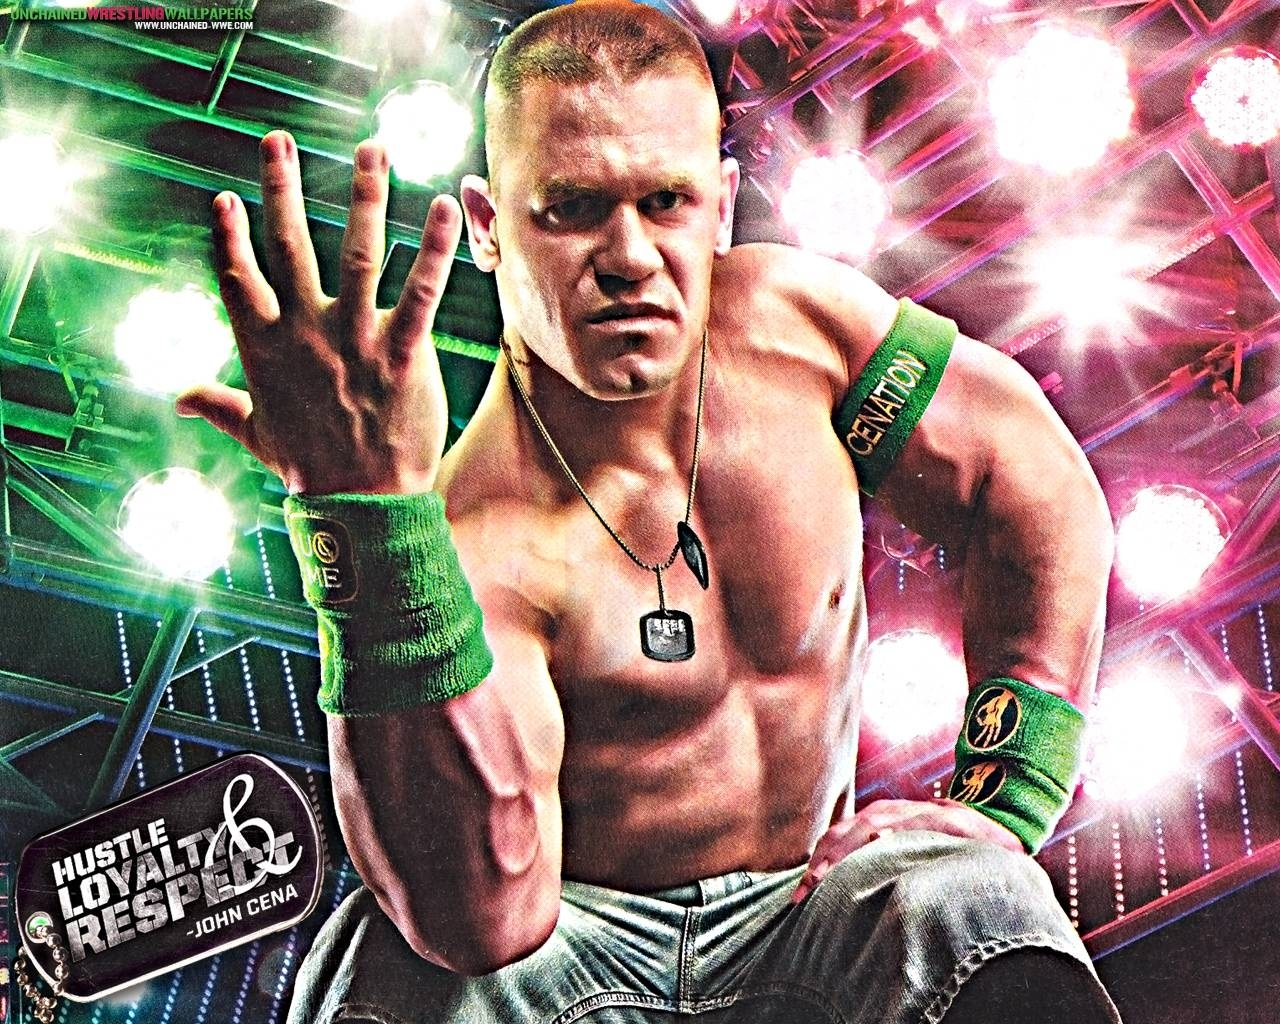 wallpaper of animated john cena hd images widescreen wwe iphone